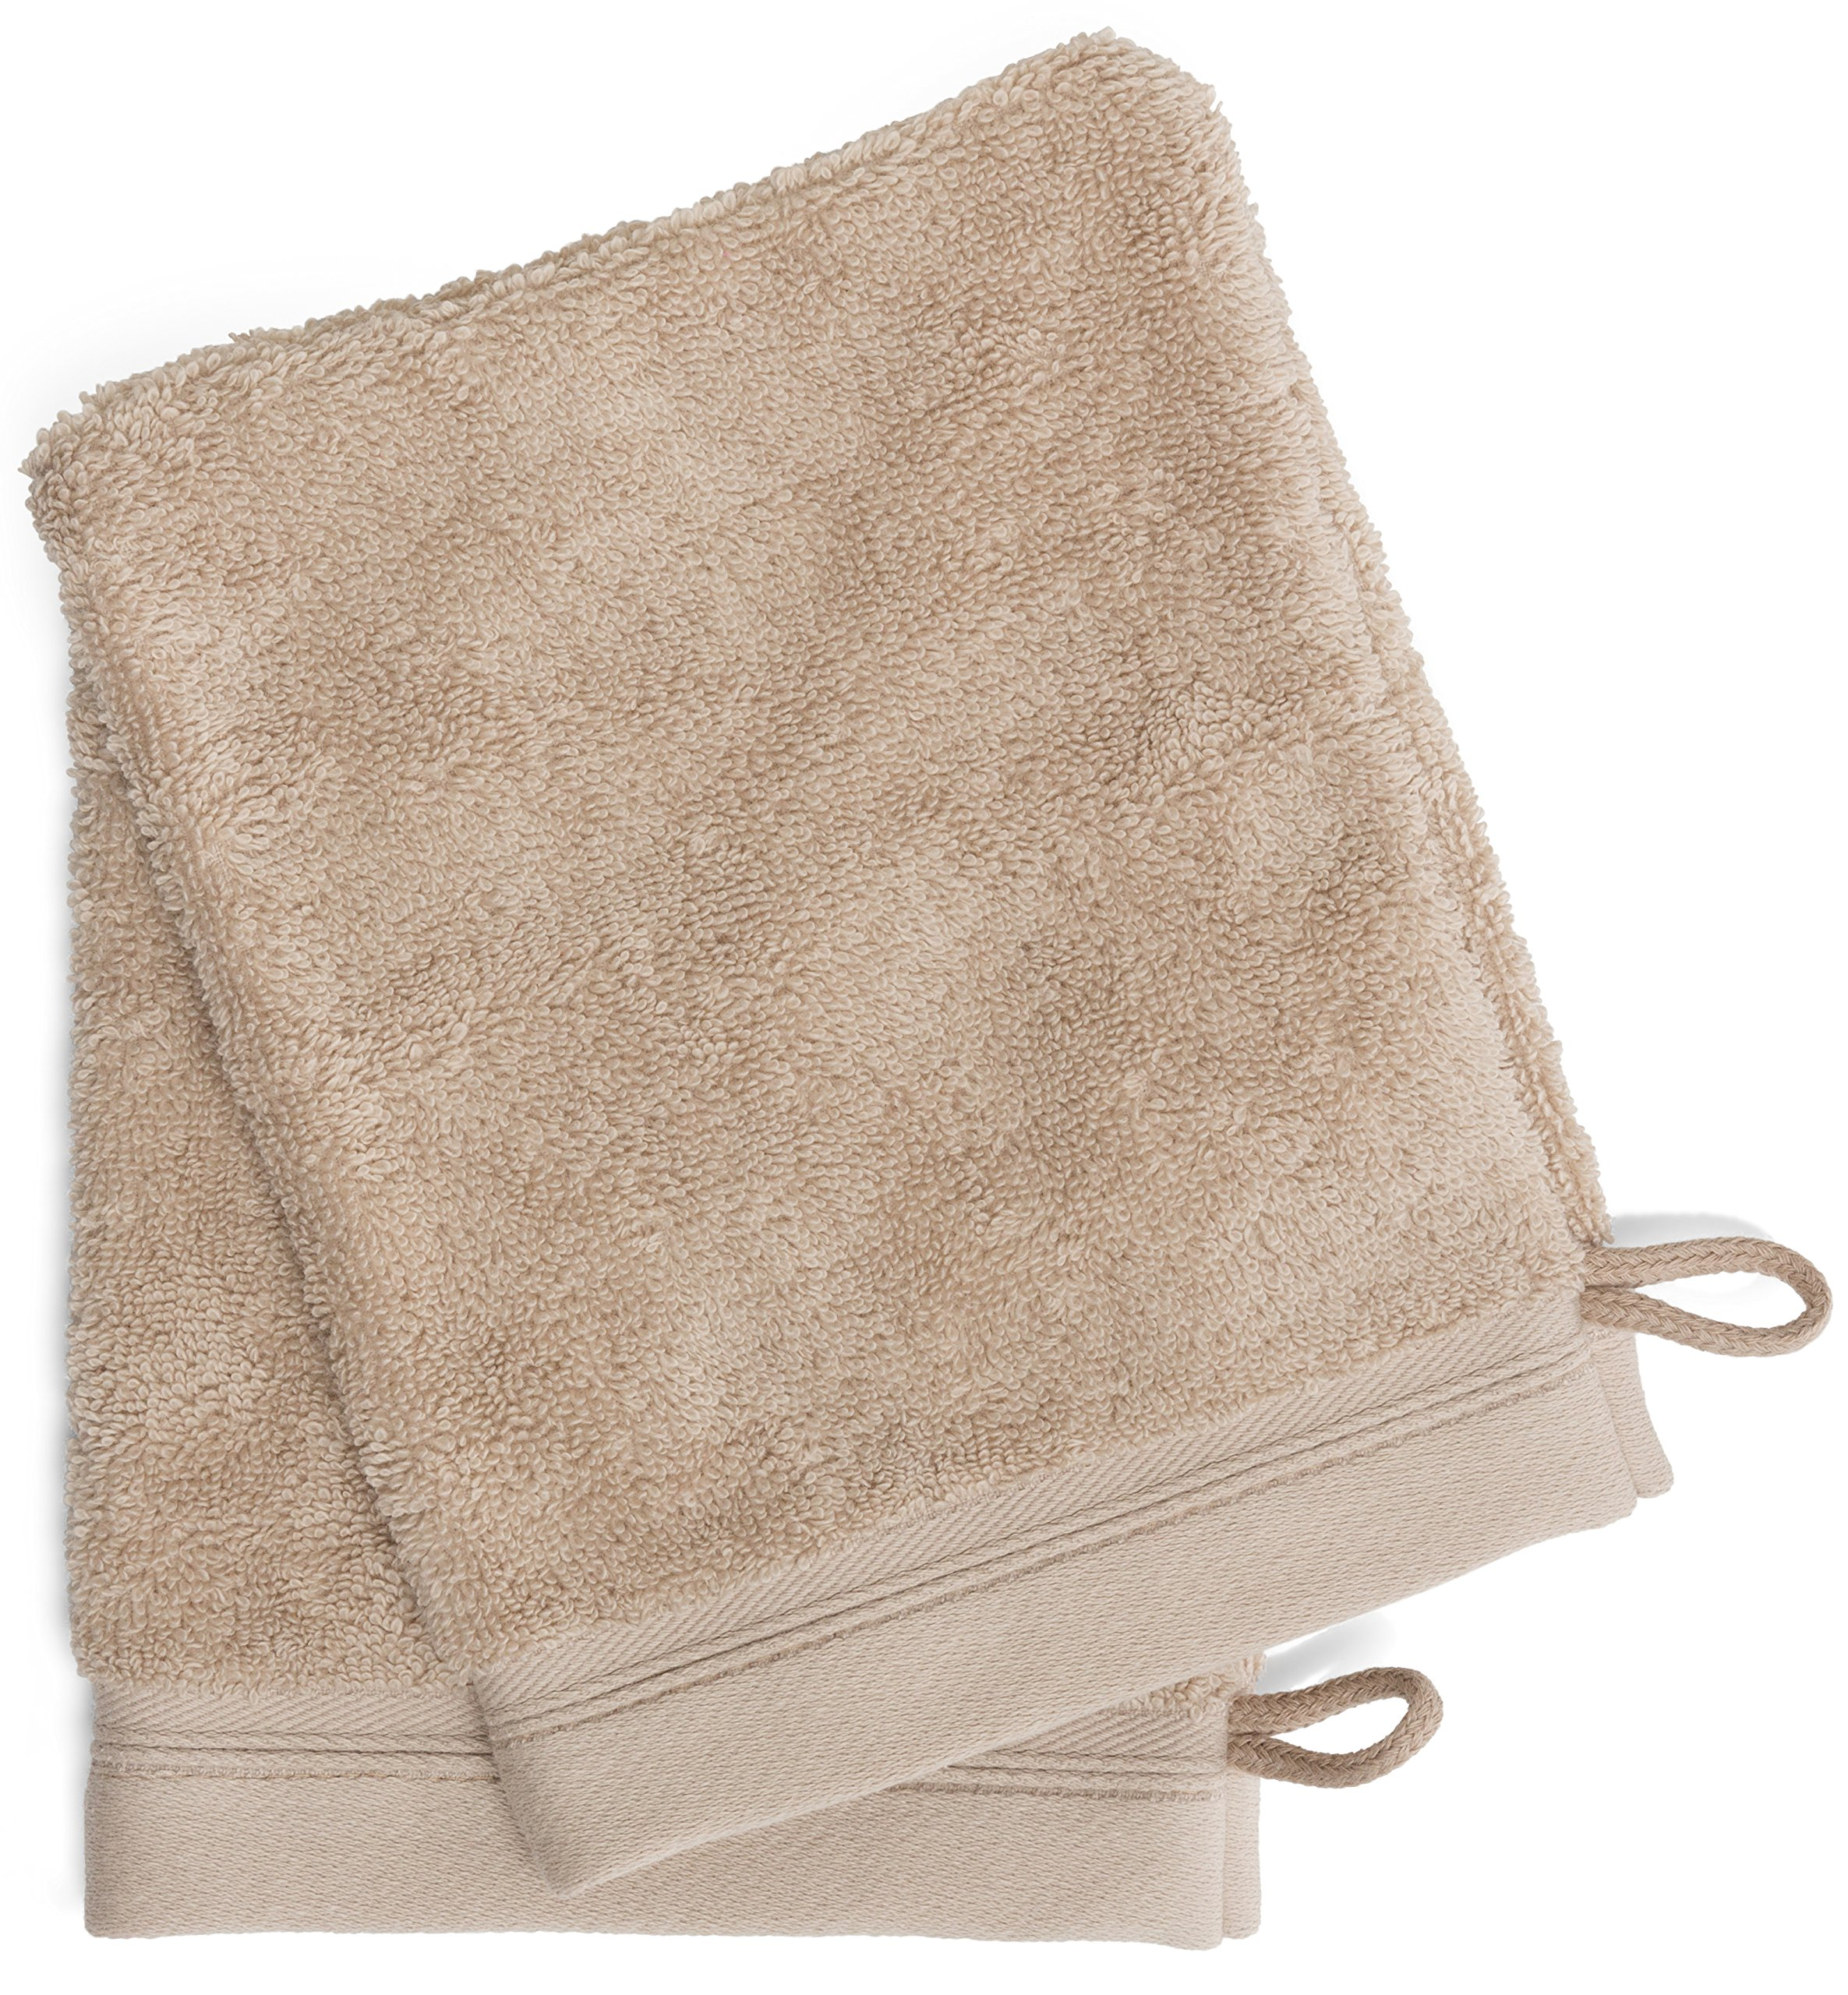 France Luxe Body French-Style Bath Mitt 2-Pack - Tan/Tan